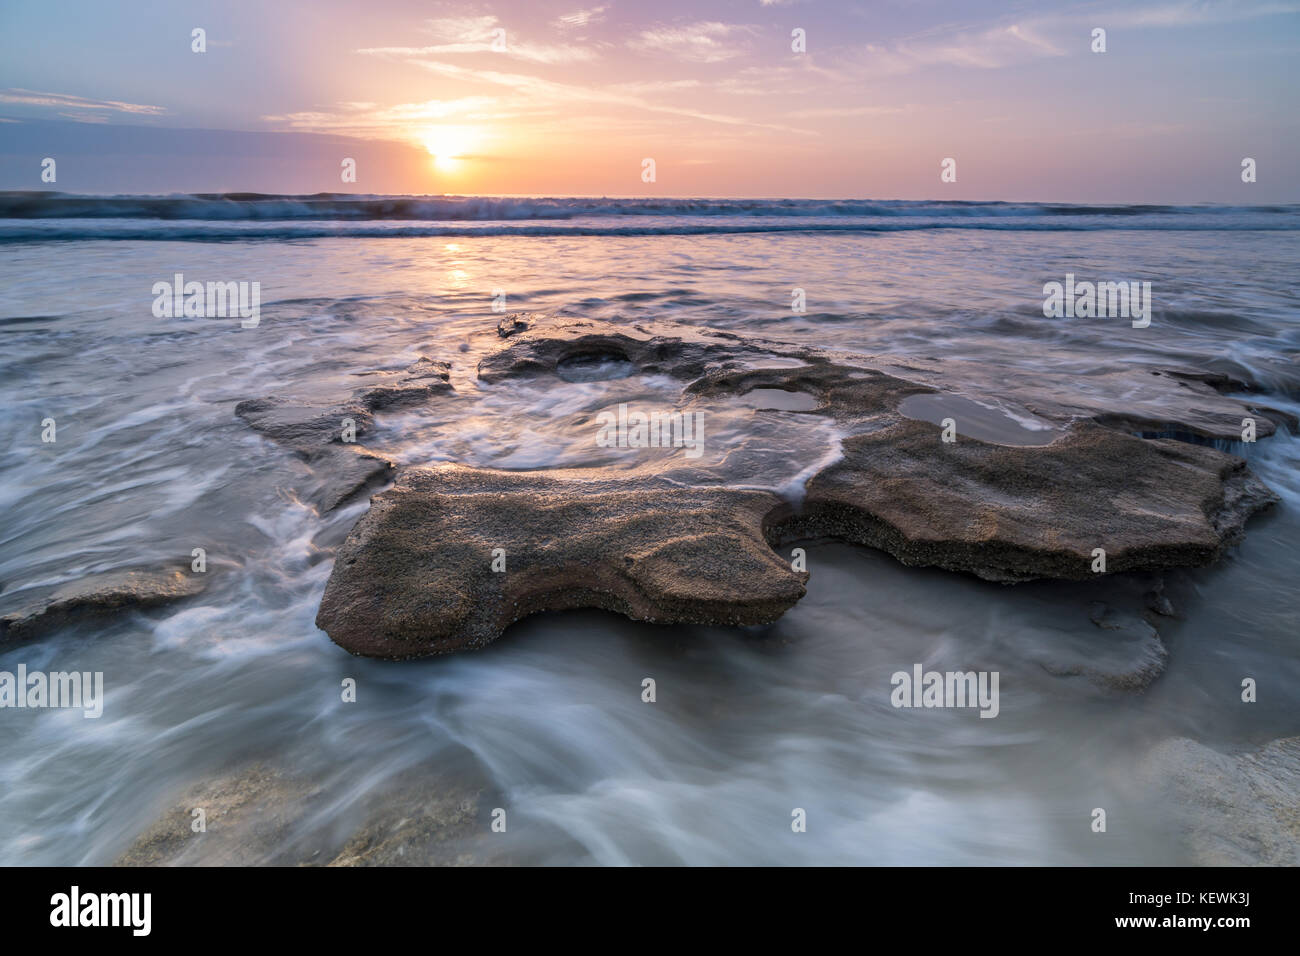 Sunrise over the Incoming tide swirling around a coquina rock at Marineland Beach, Florida - Stock Image